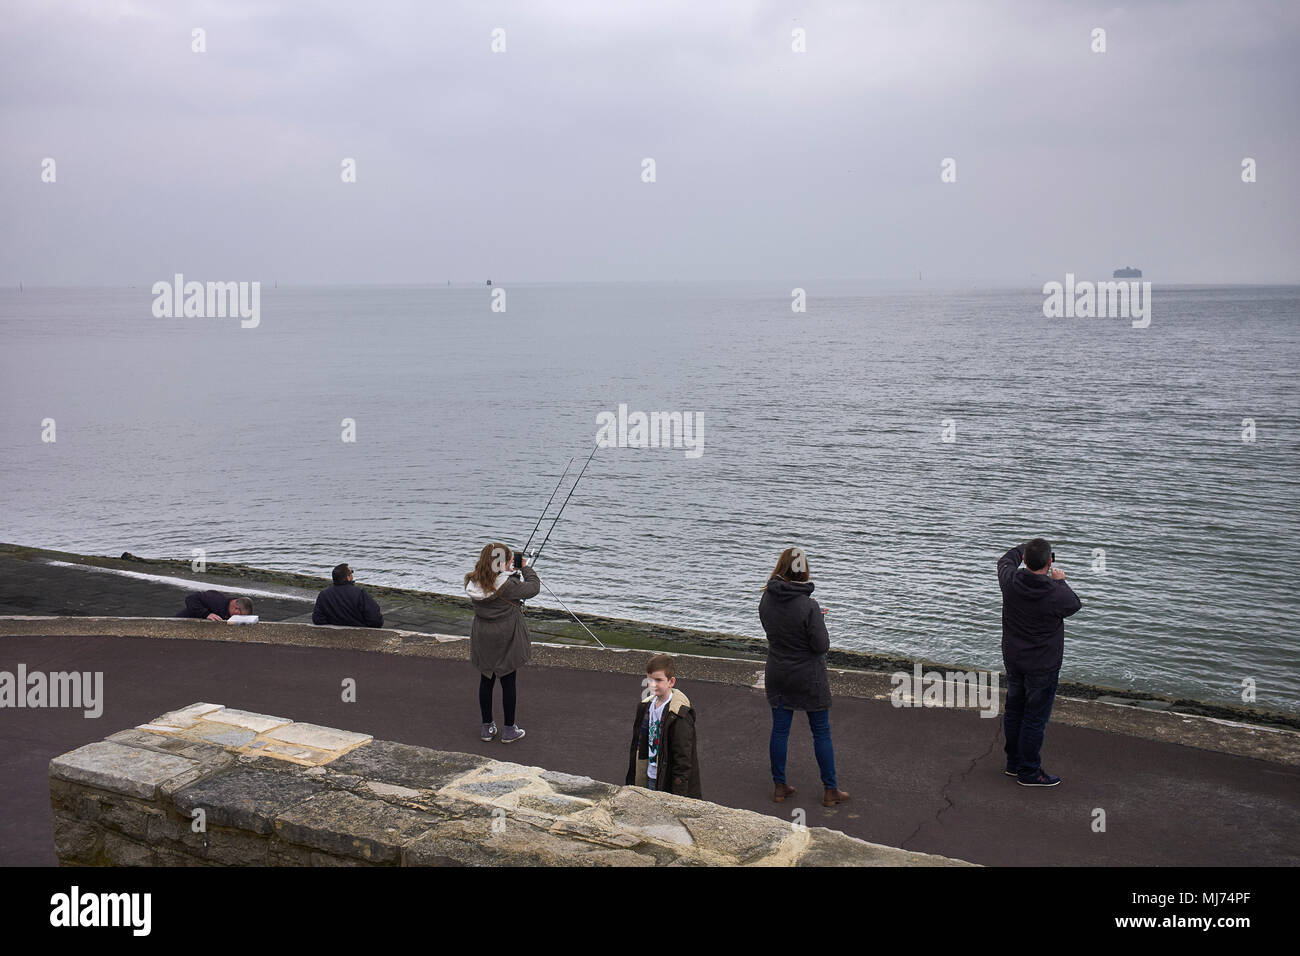 A family stop to take phone pics out to sea while a boy looks towards camera at Southsea, Hampshire - Stock Image